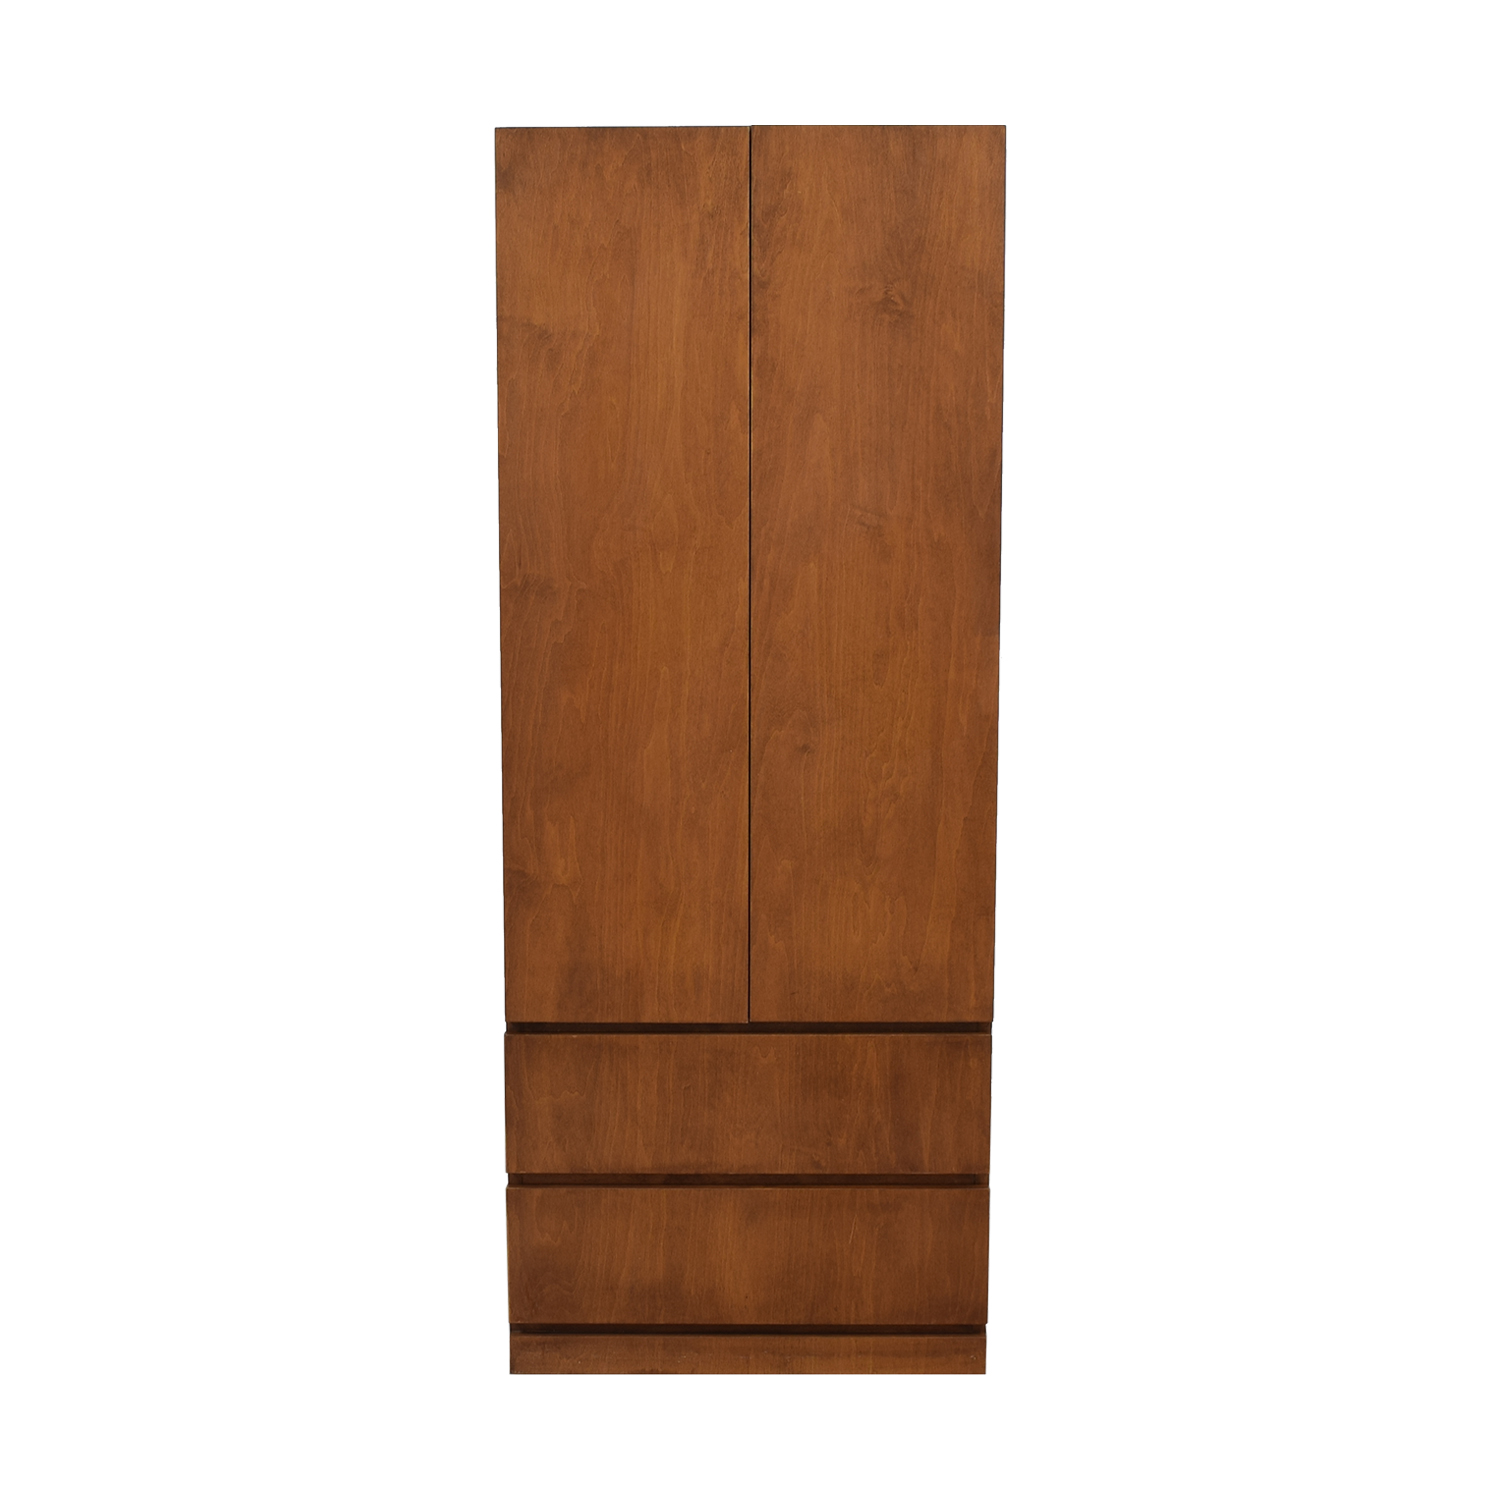 Gothic Cabinet Craft Gothic Cabinet Craft Two-Drawer Wardrobe Closet coupon